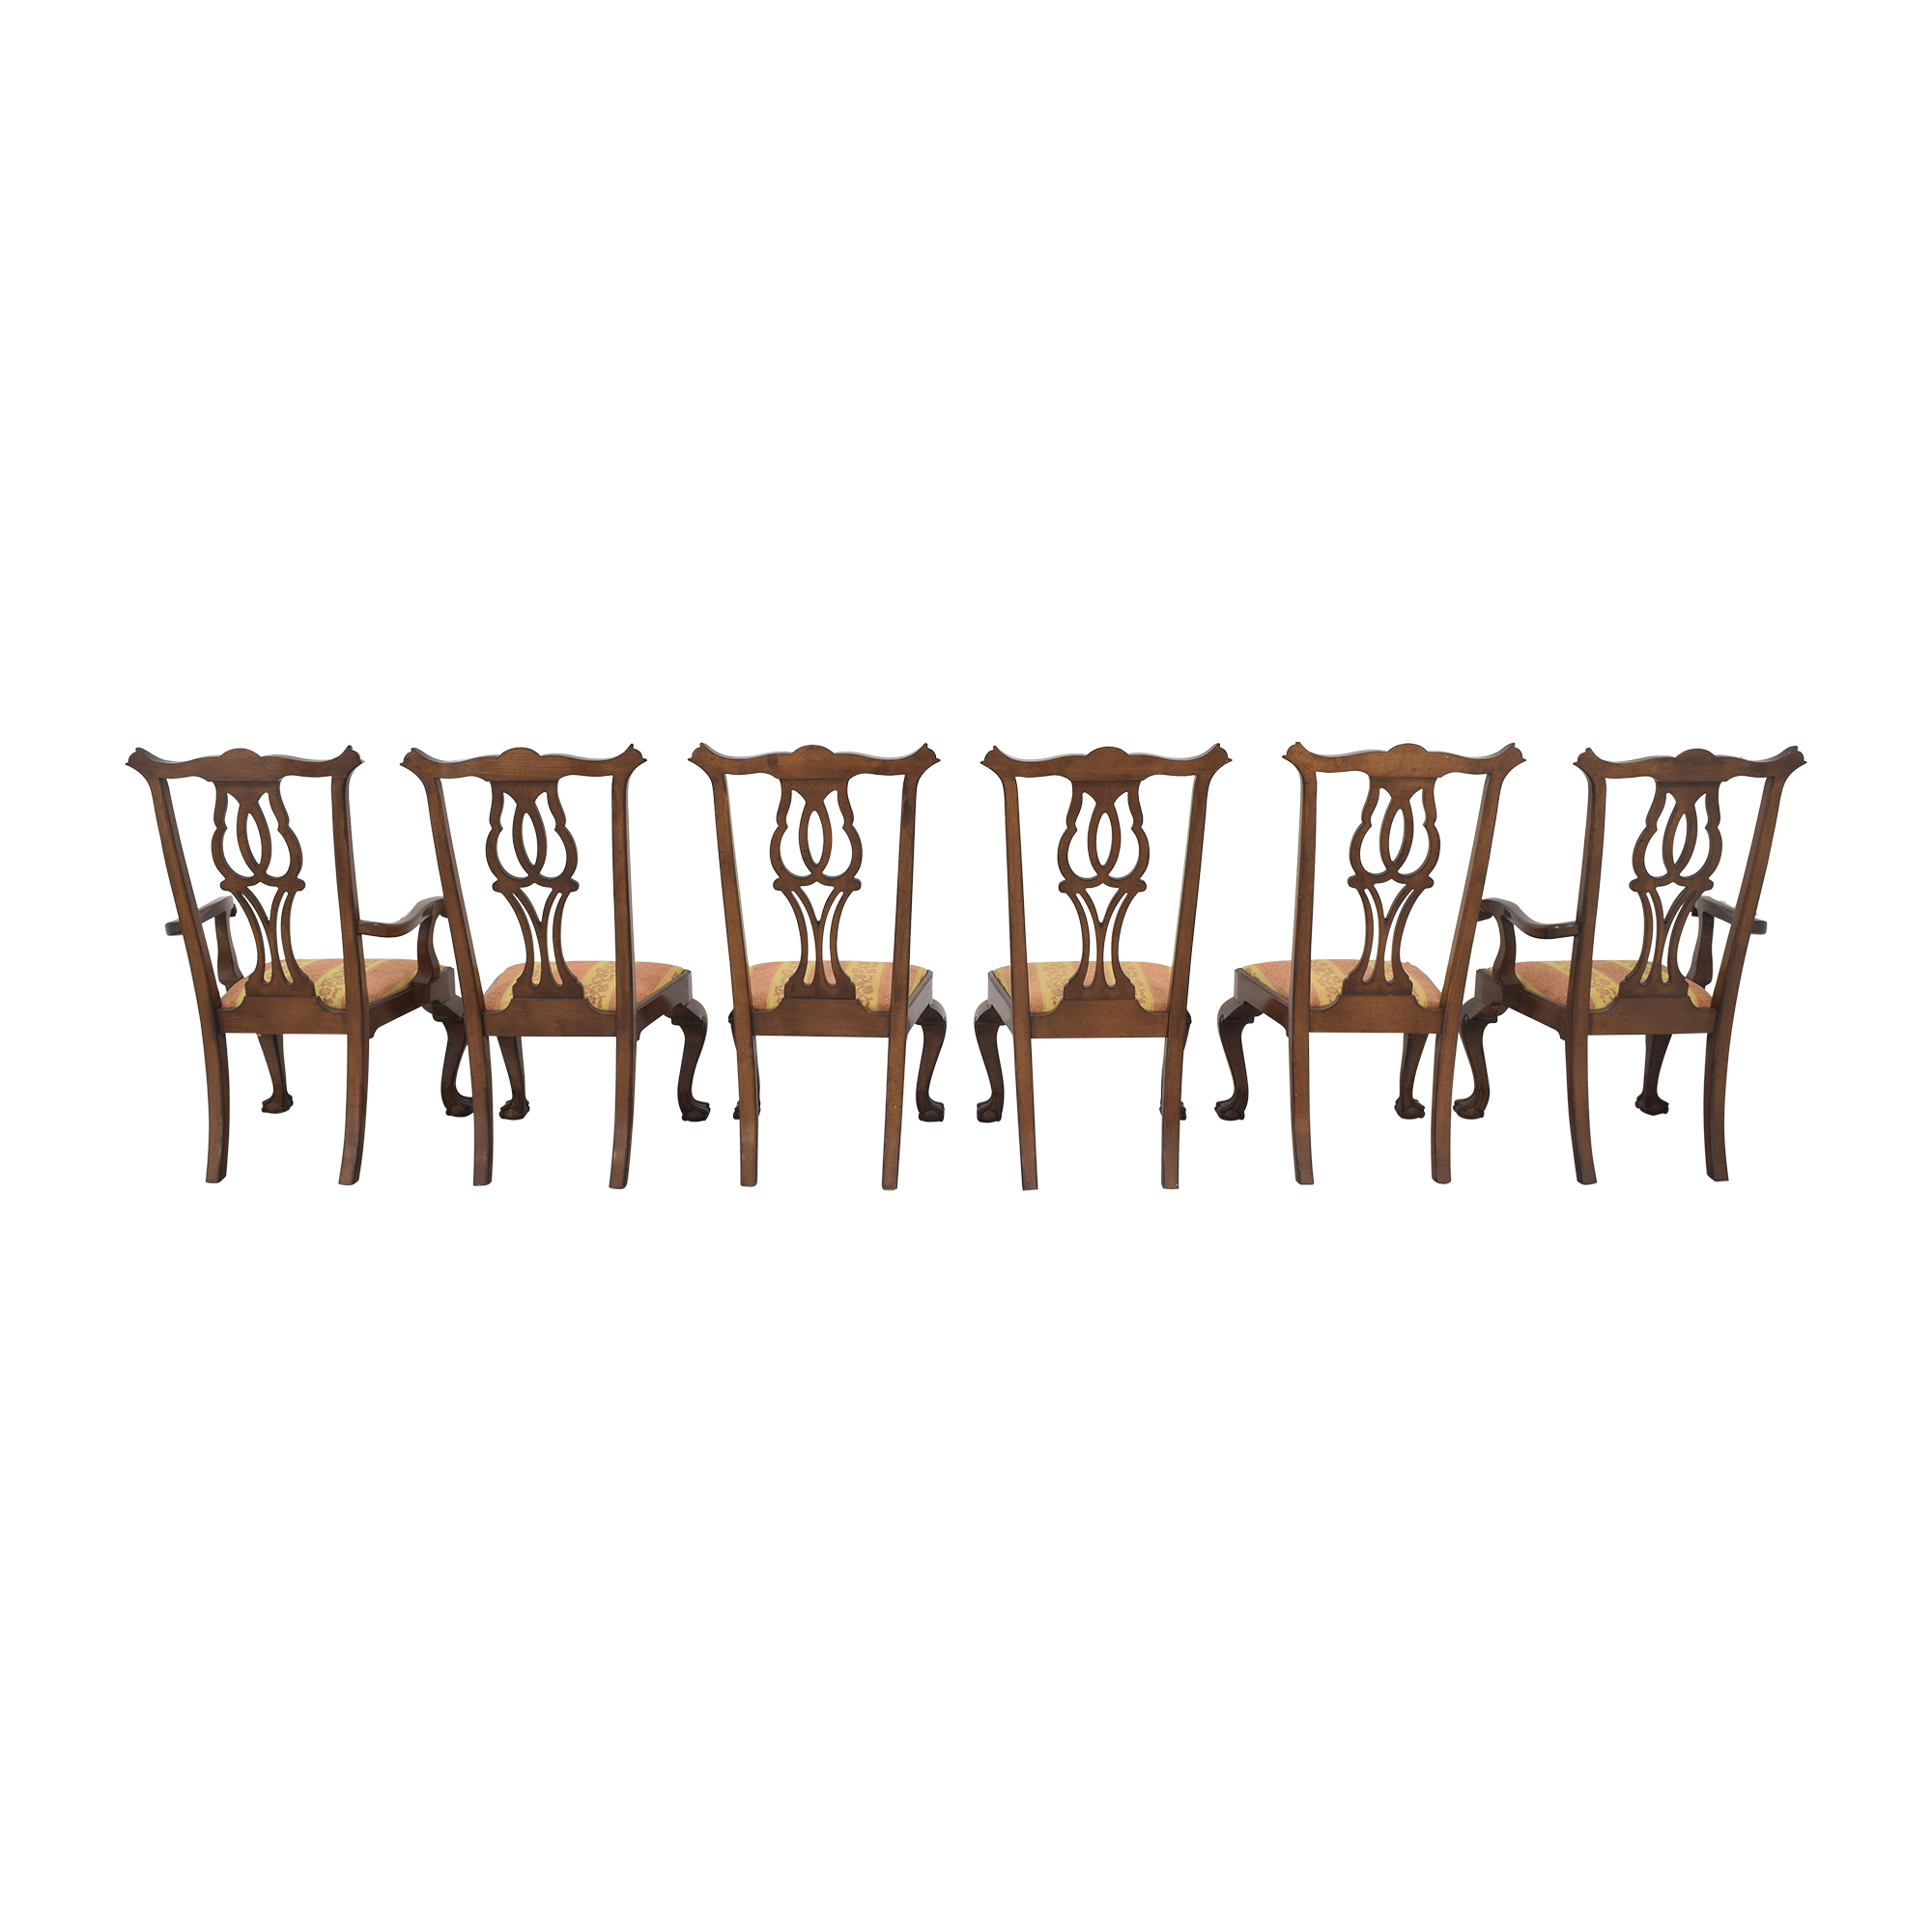 Fancher Furniture Fancher Furniture Chippendale Dining Chairs for sale